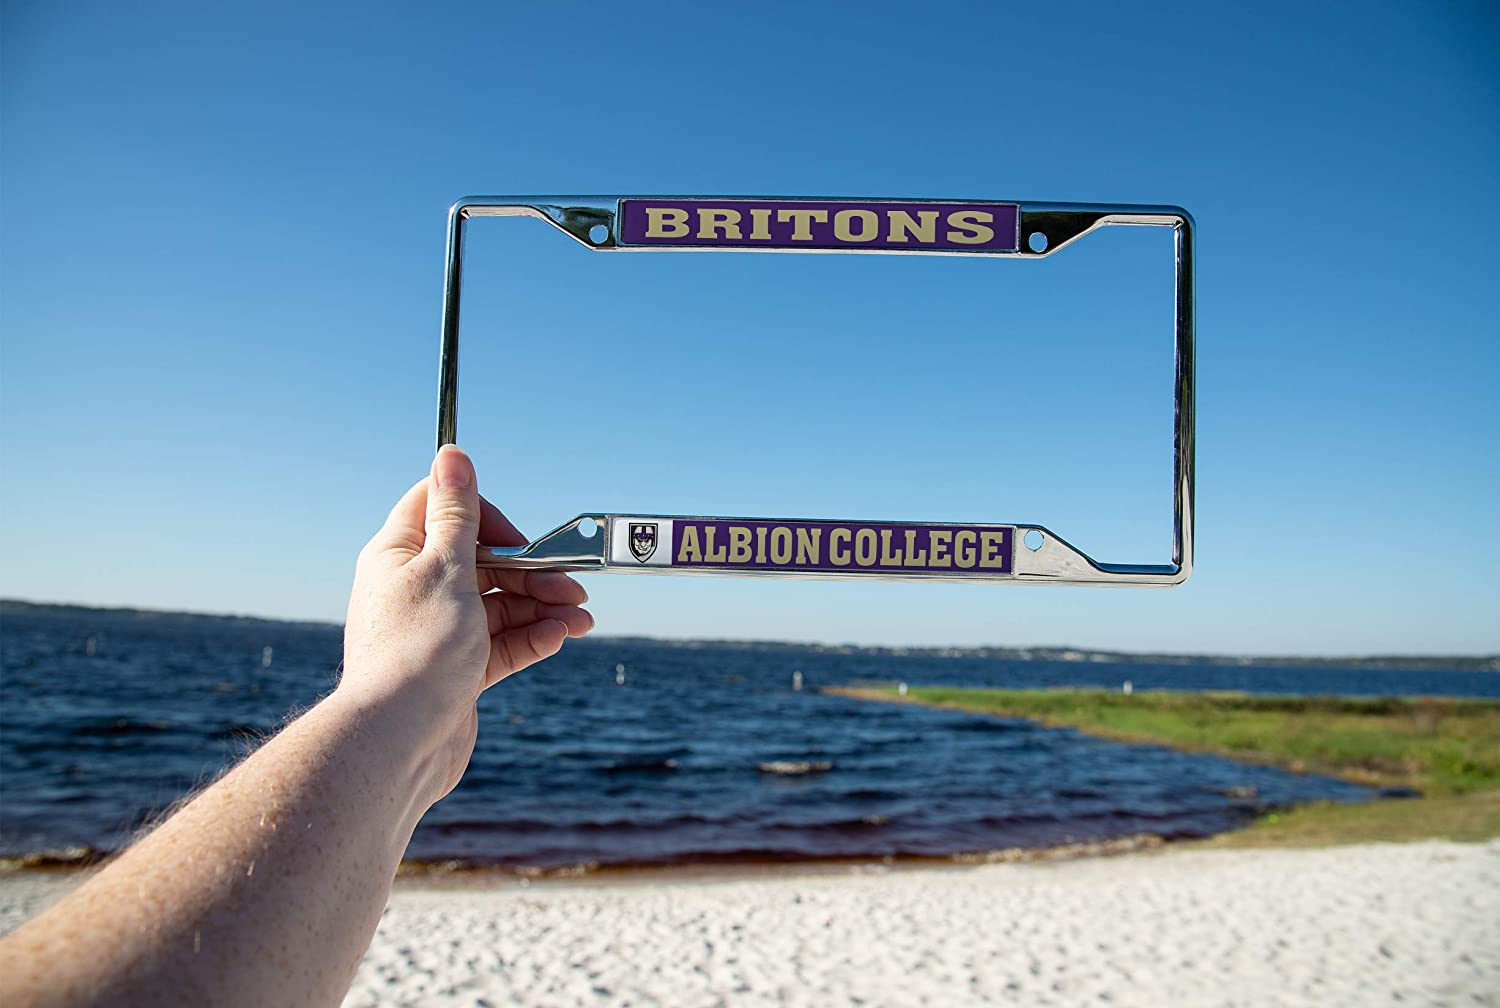 Mascot Desert Cactus Albion College Britons NCAA Metal License Plate Frame for Front or Back of Car Officially Licensed